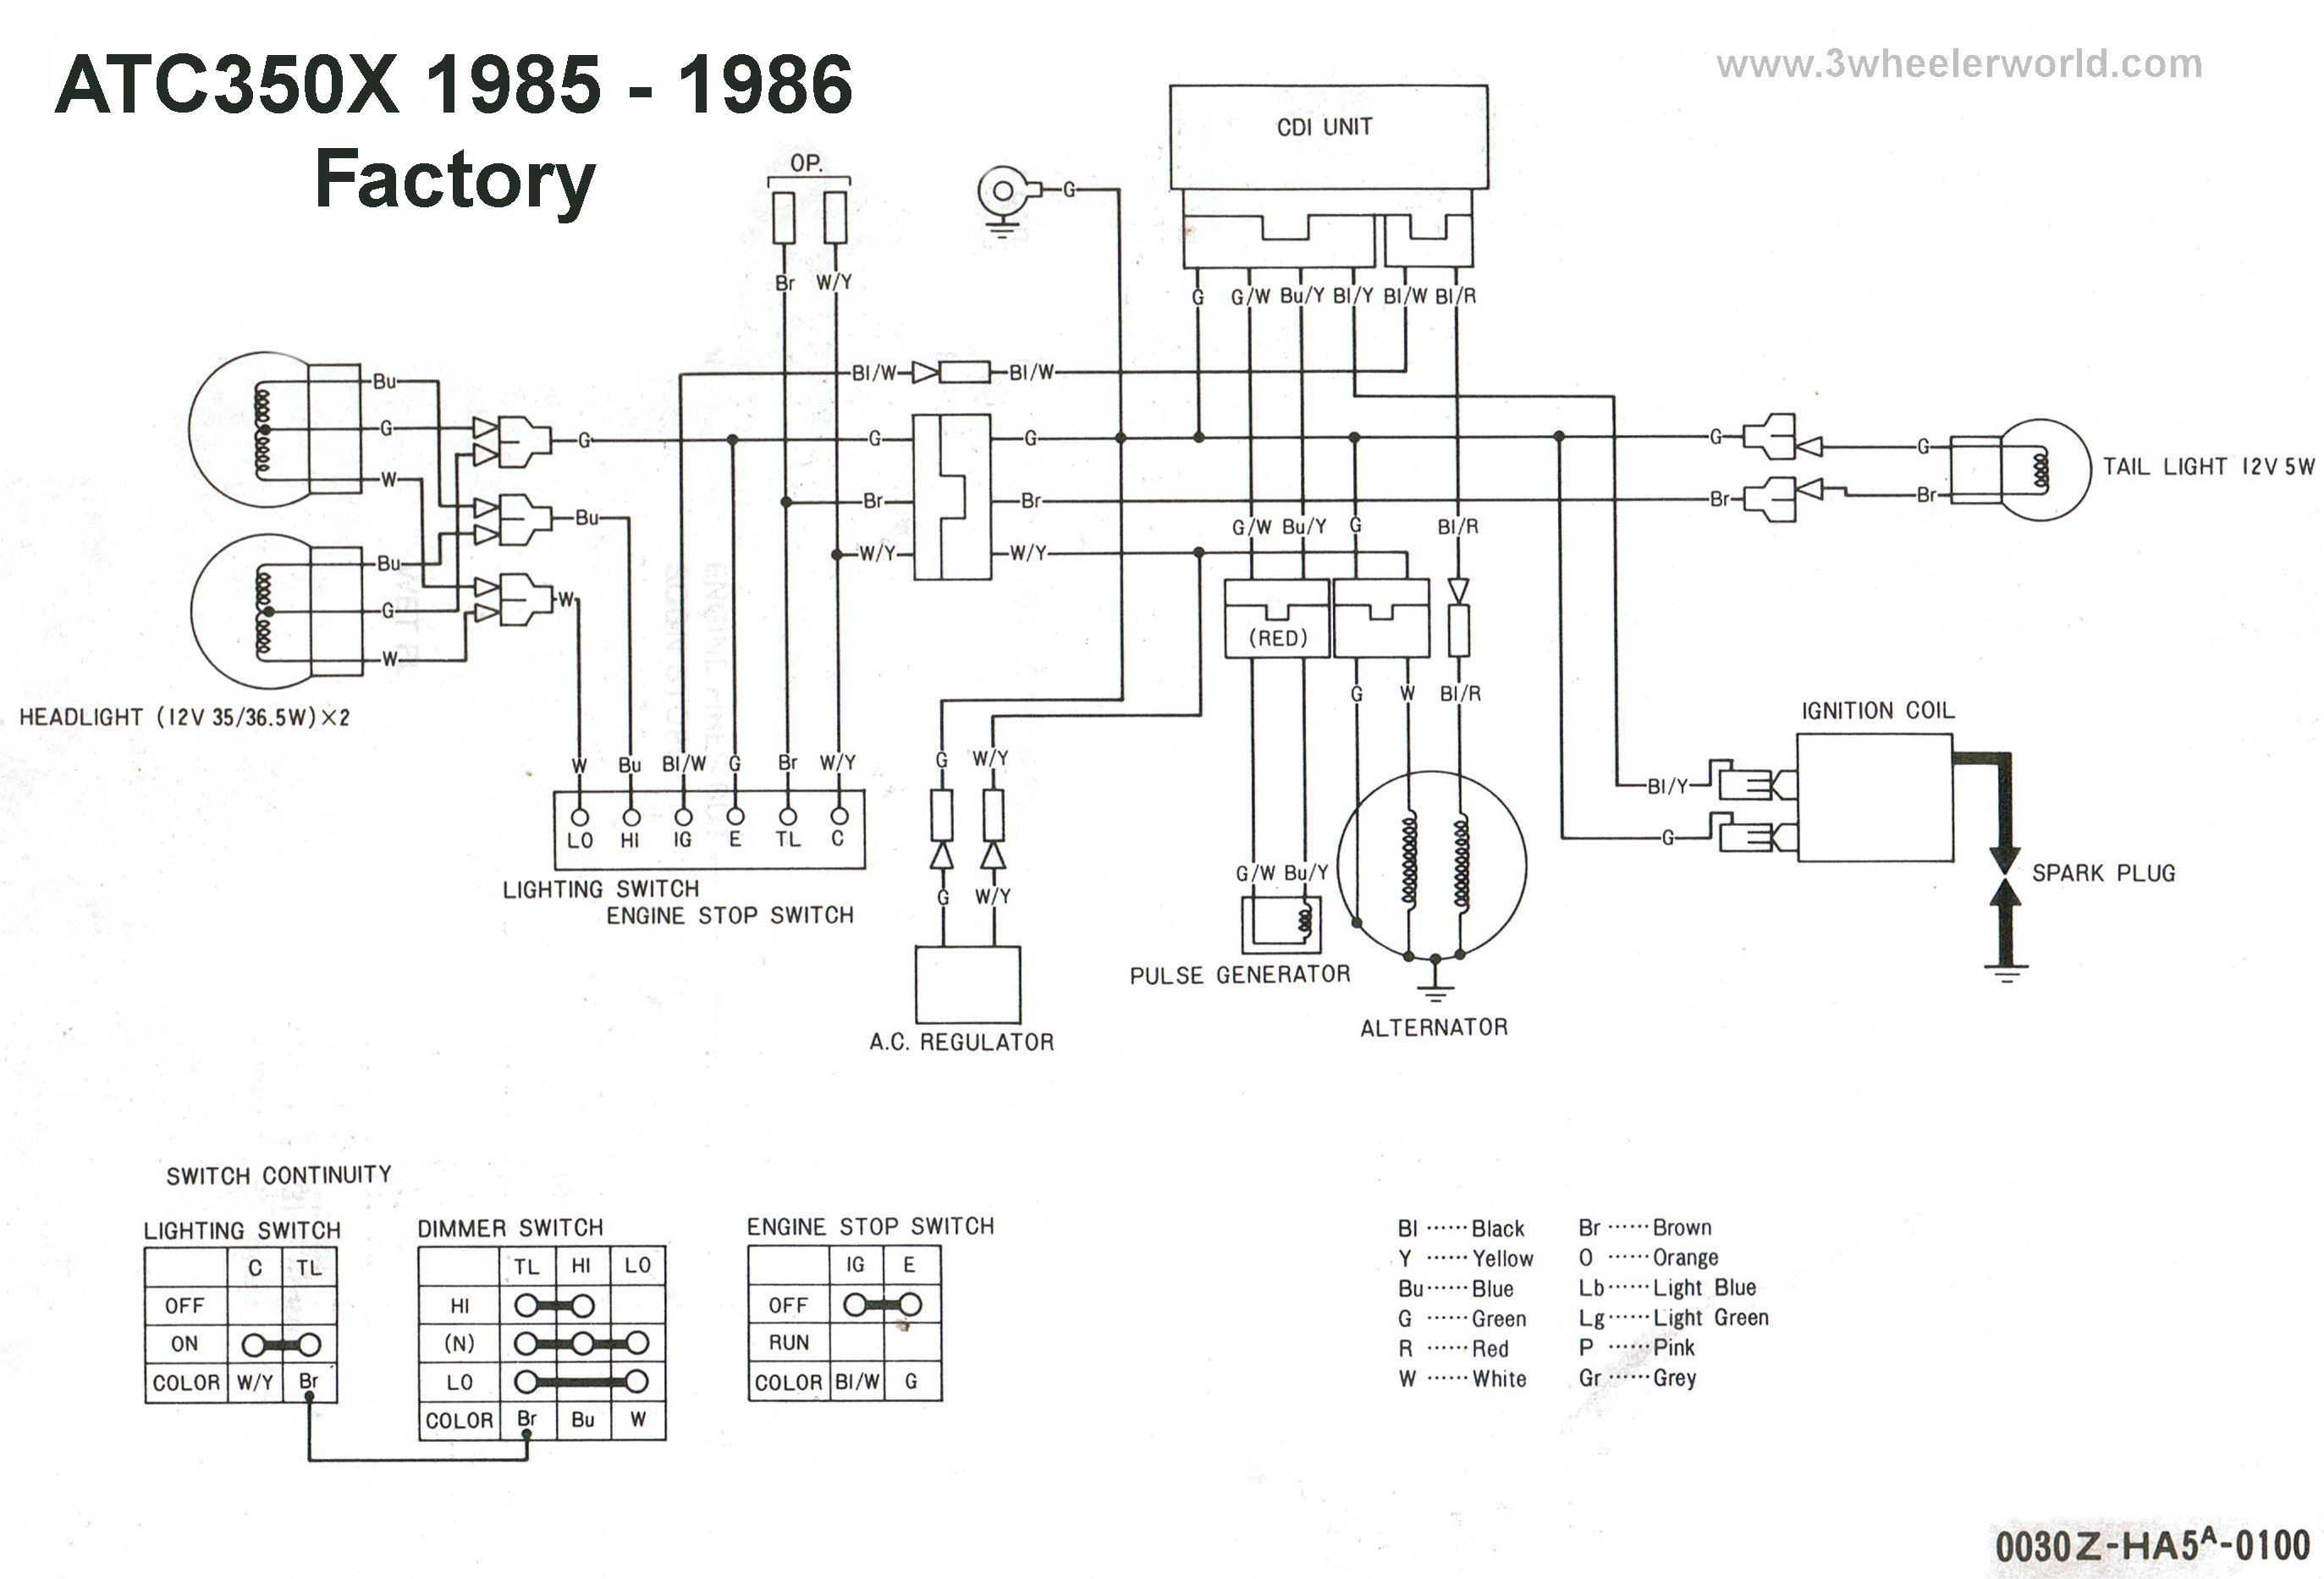 ATC350Xx85Thru86 98 honda fourtrax diagrams wiring diagram simonand trx350 wiring diagram 1987 at n-0.co